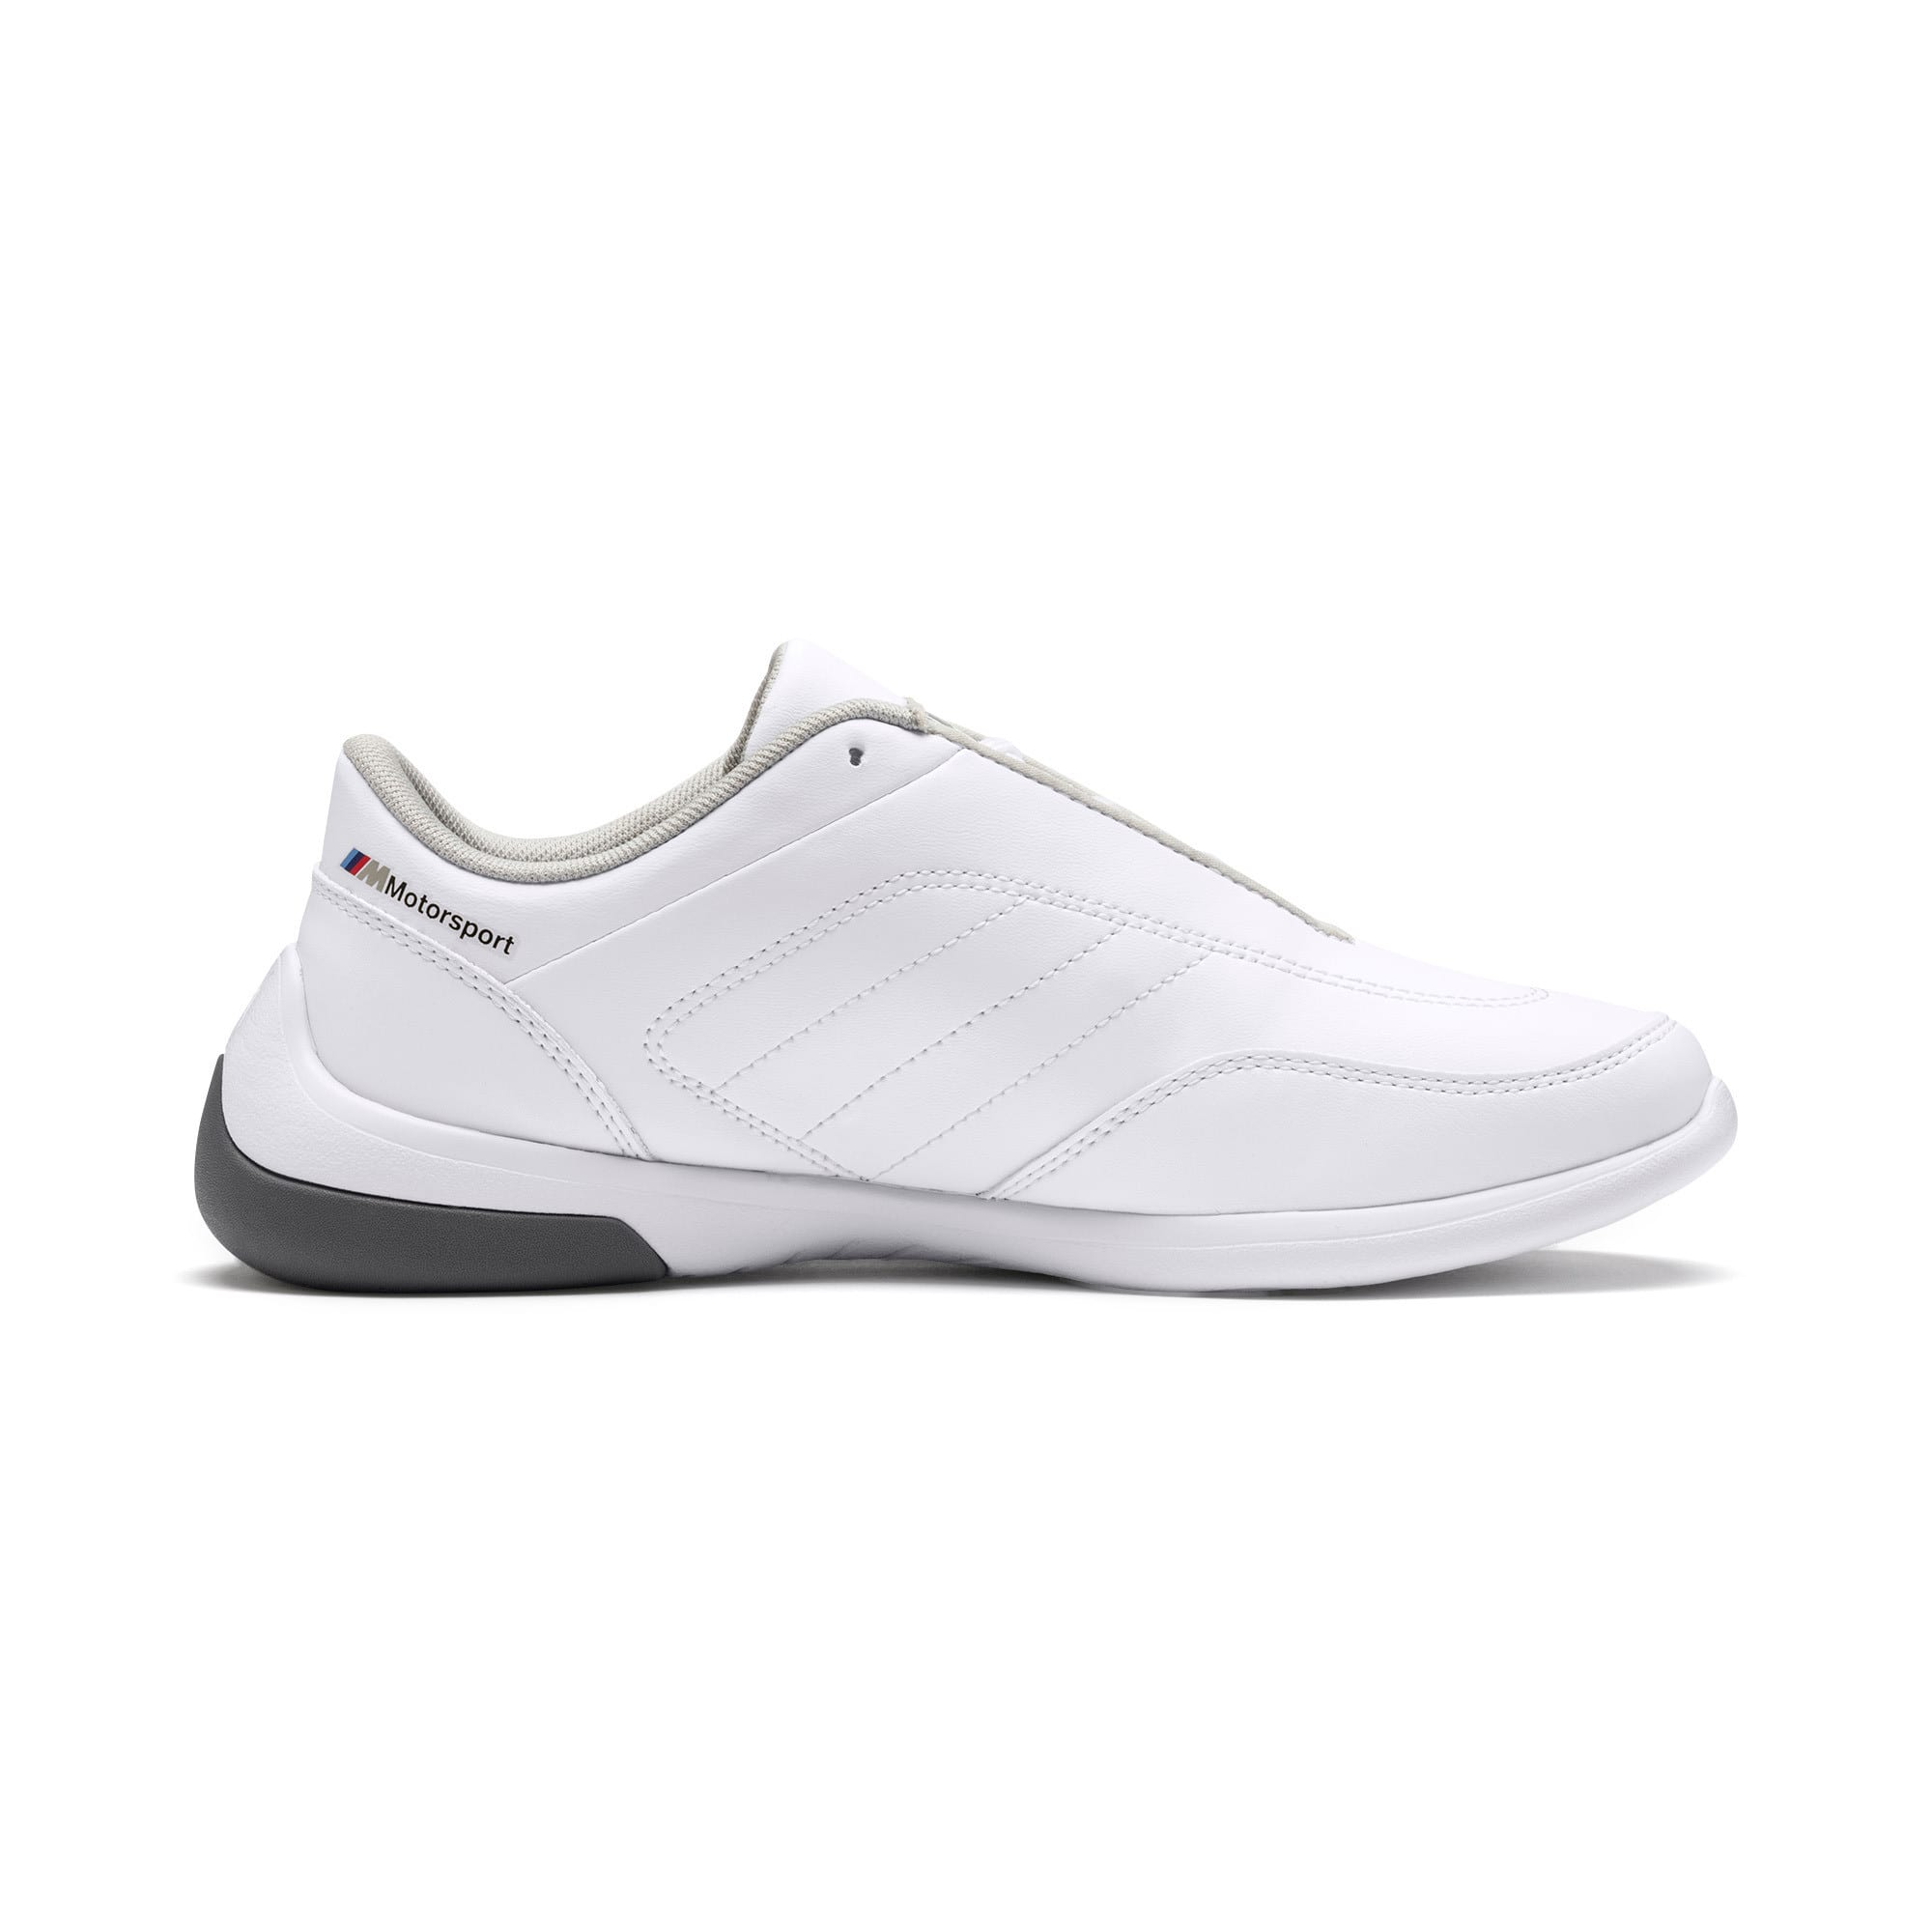 Thumbnail 5 of BMW M Kart Cat III Youth Trainers, Puma White-Smoked Pearl, medium-IND